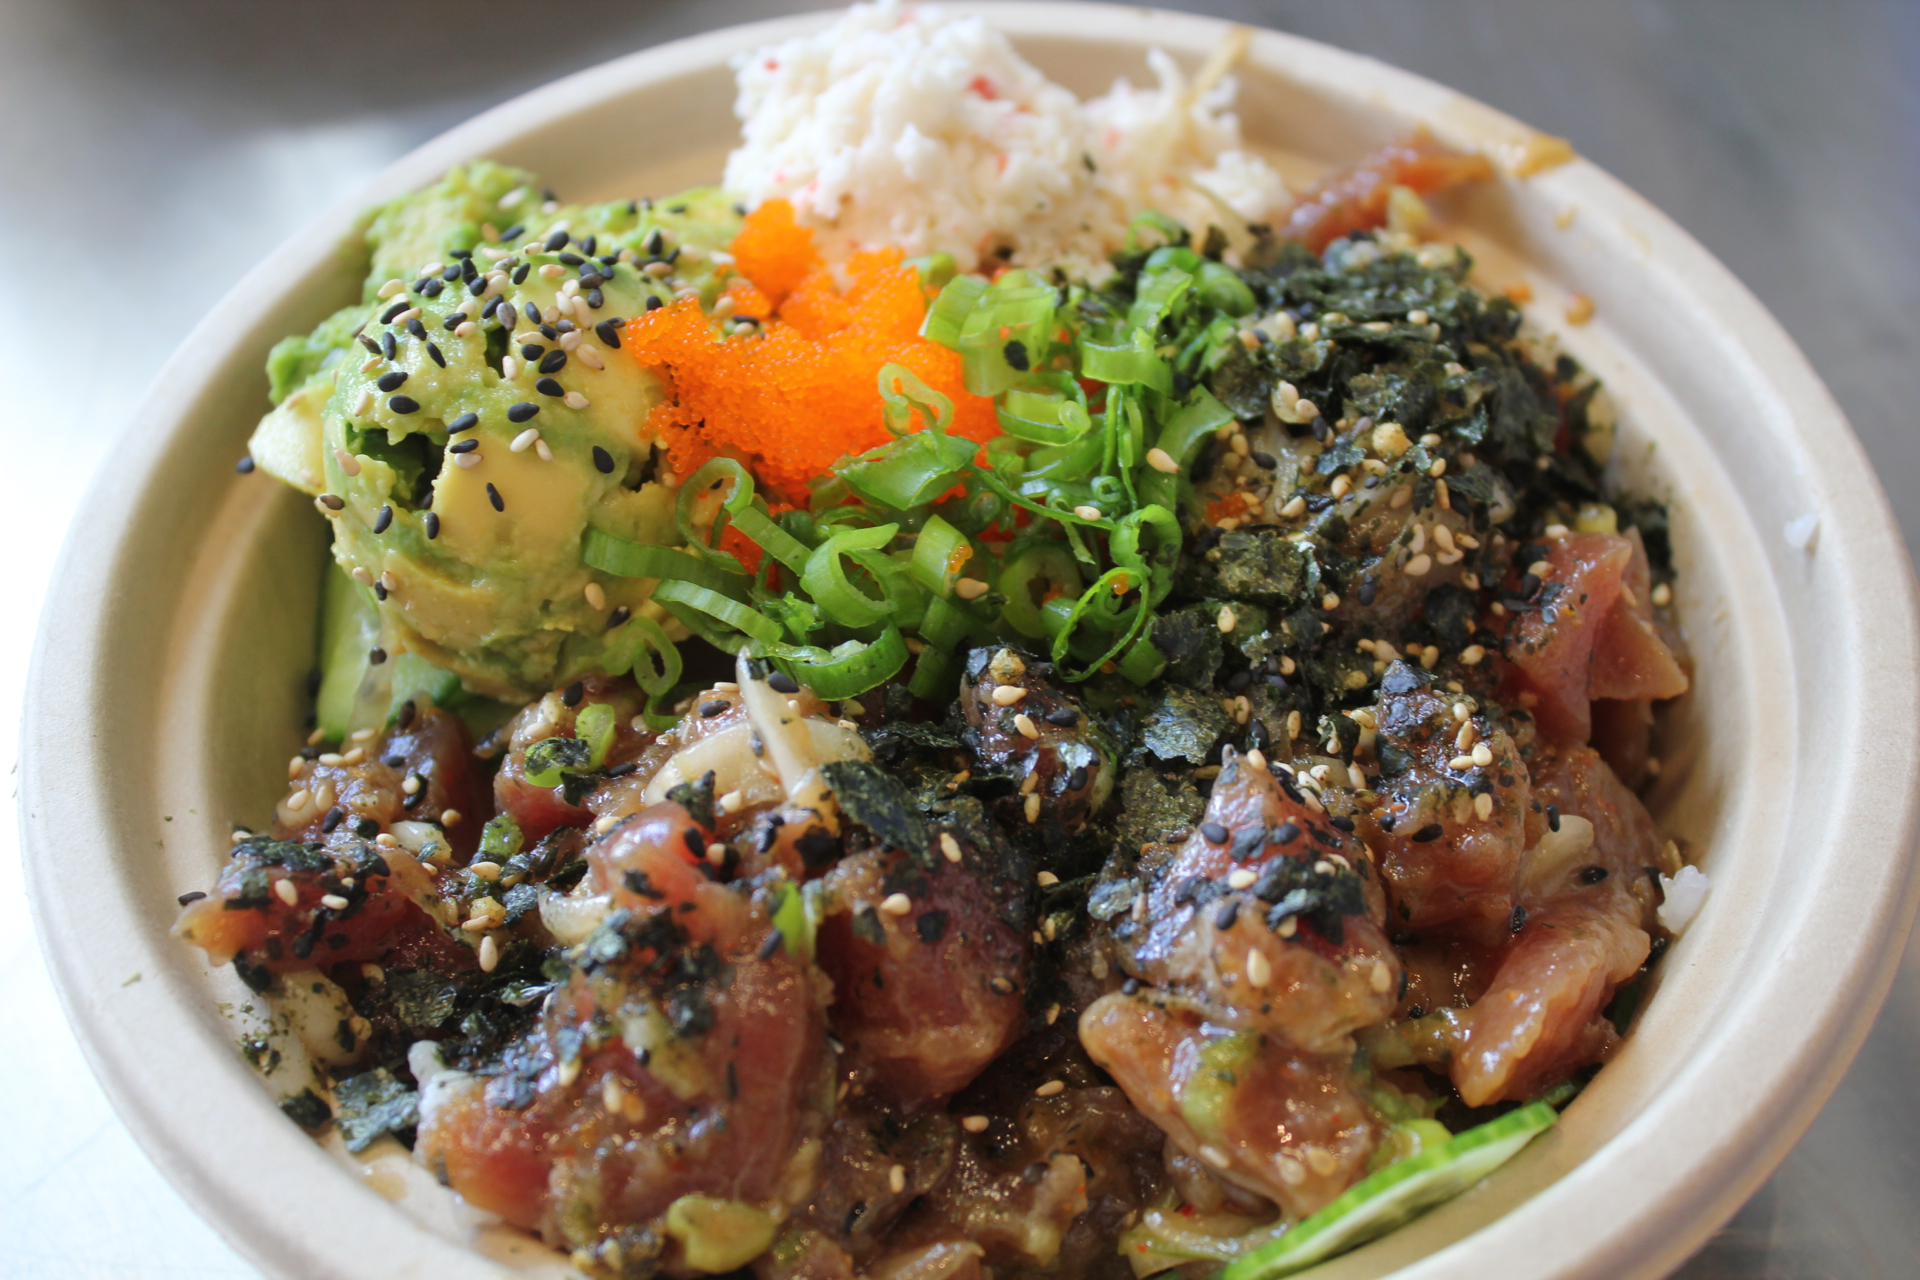 The signature poke bowl at Go Fish Poke Bar.